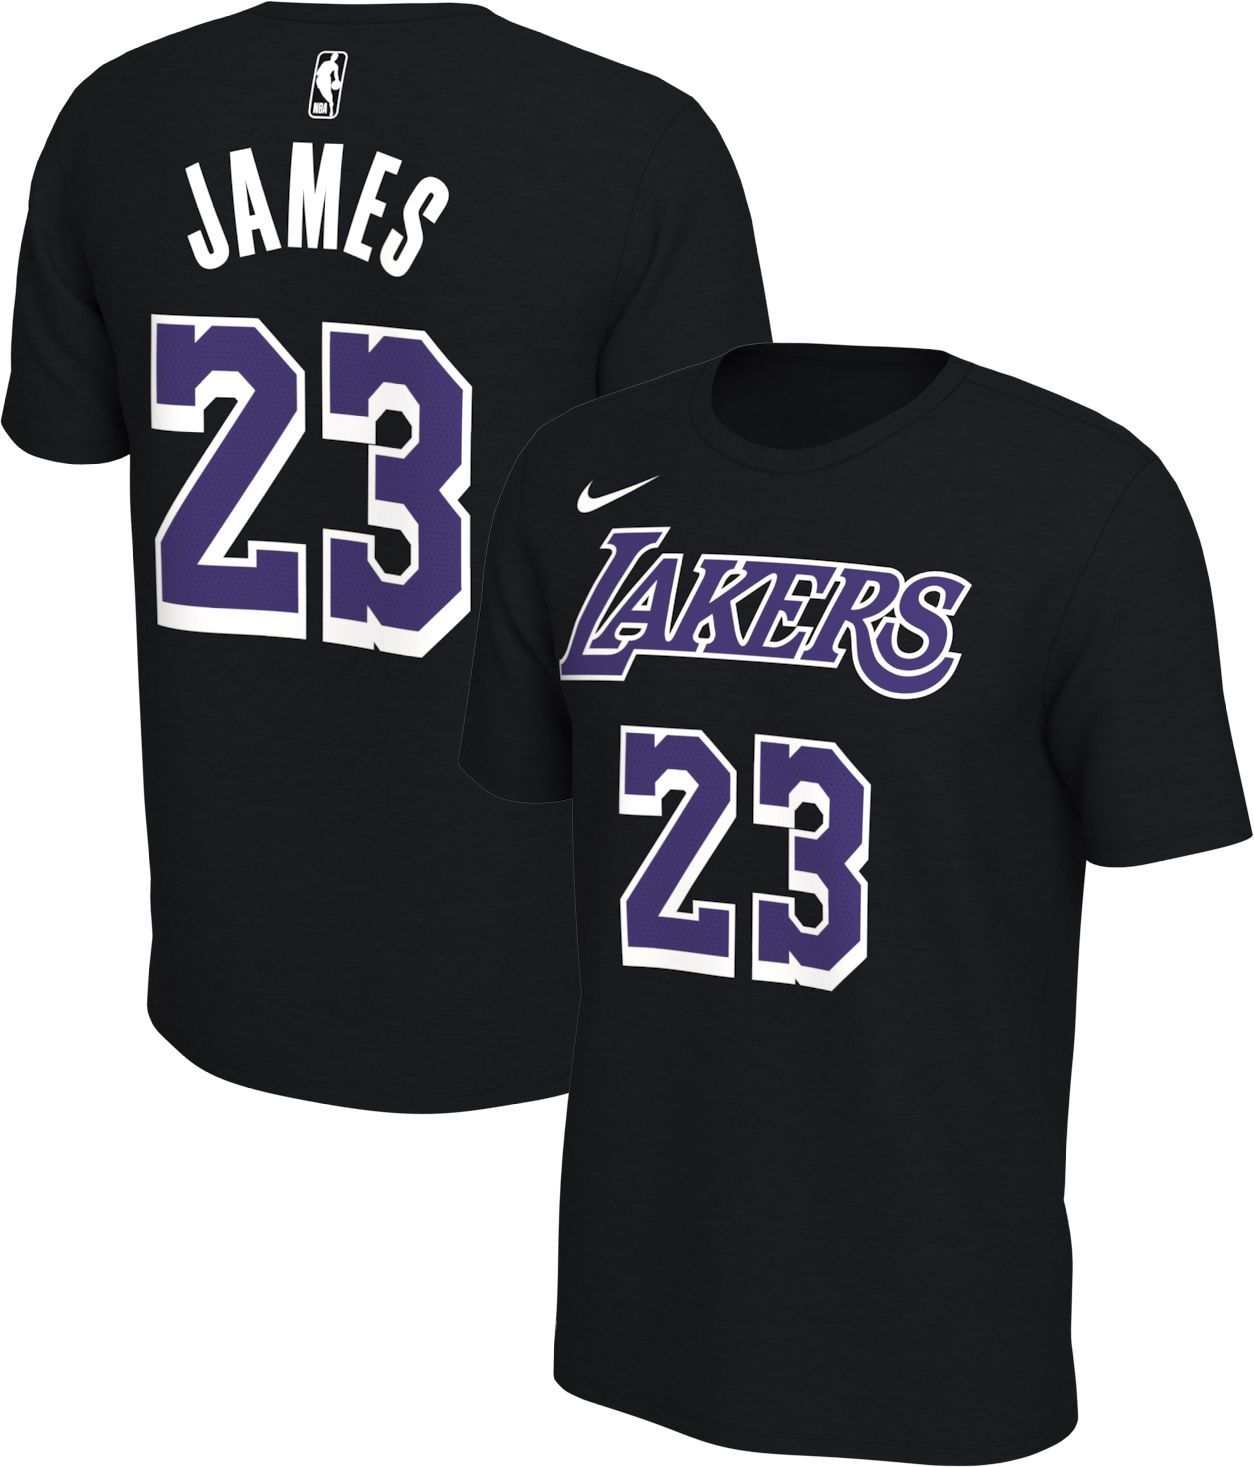 7172d68650f Nike Men's Los Angeles Lakers LeBron James #23 Dri-FIT Black T-Shirt ...